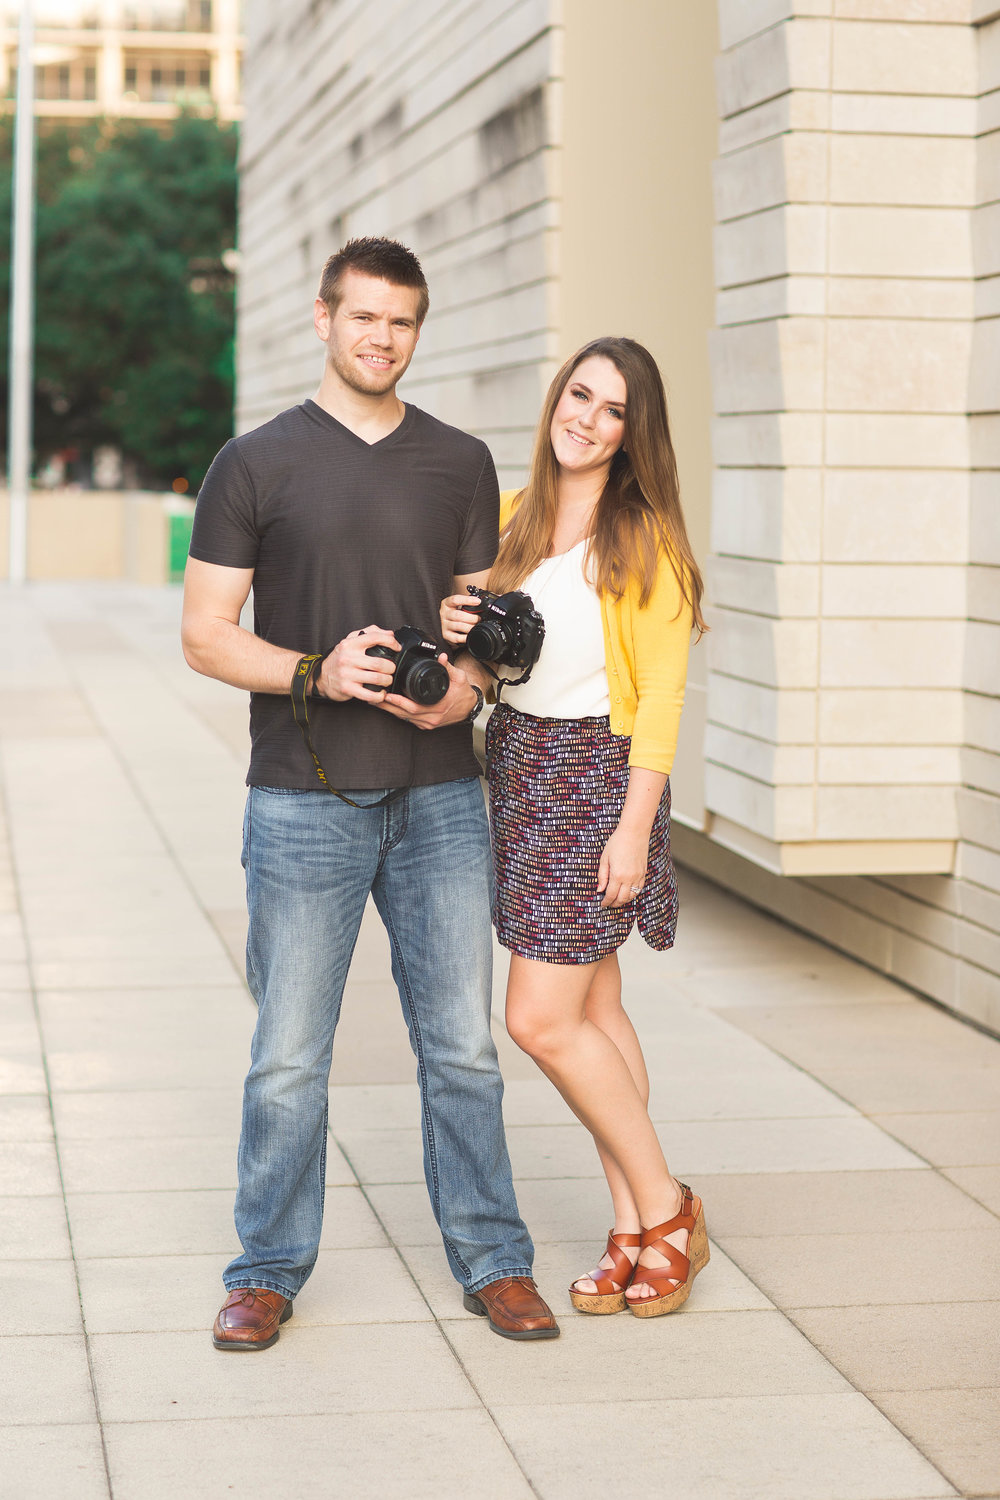 Austin Texas Engagement What to Do first When You Get Engaged-3.JPG